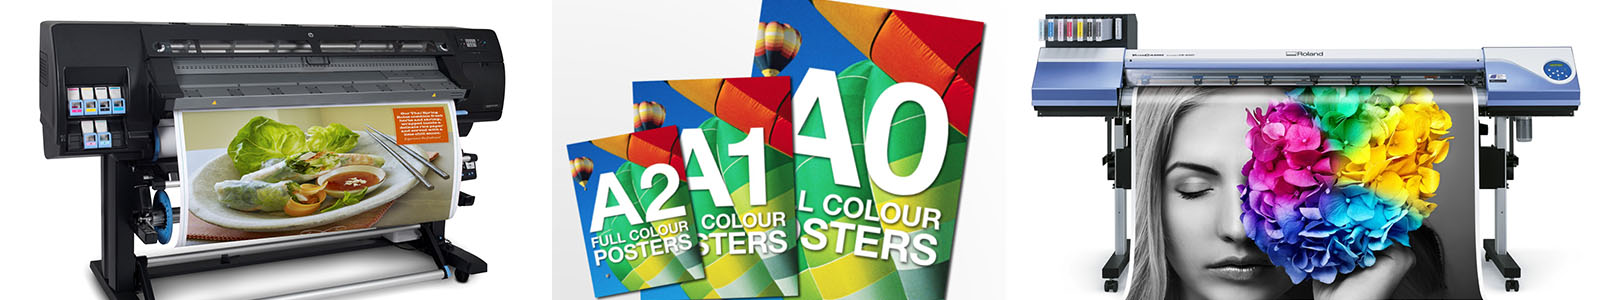 Poster Printing - Wizardz Print and Design Cape Town